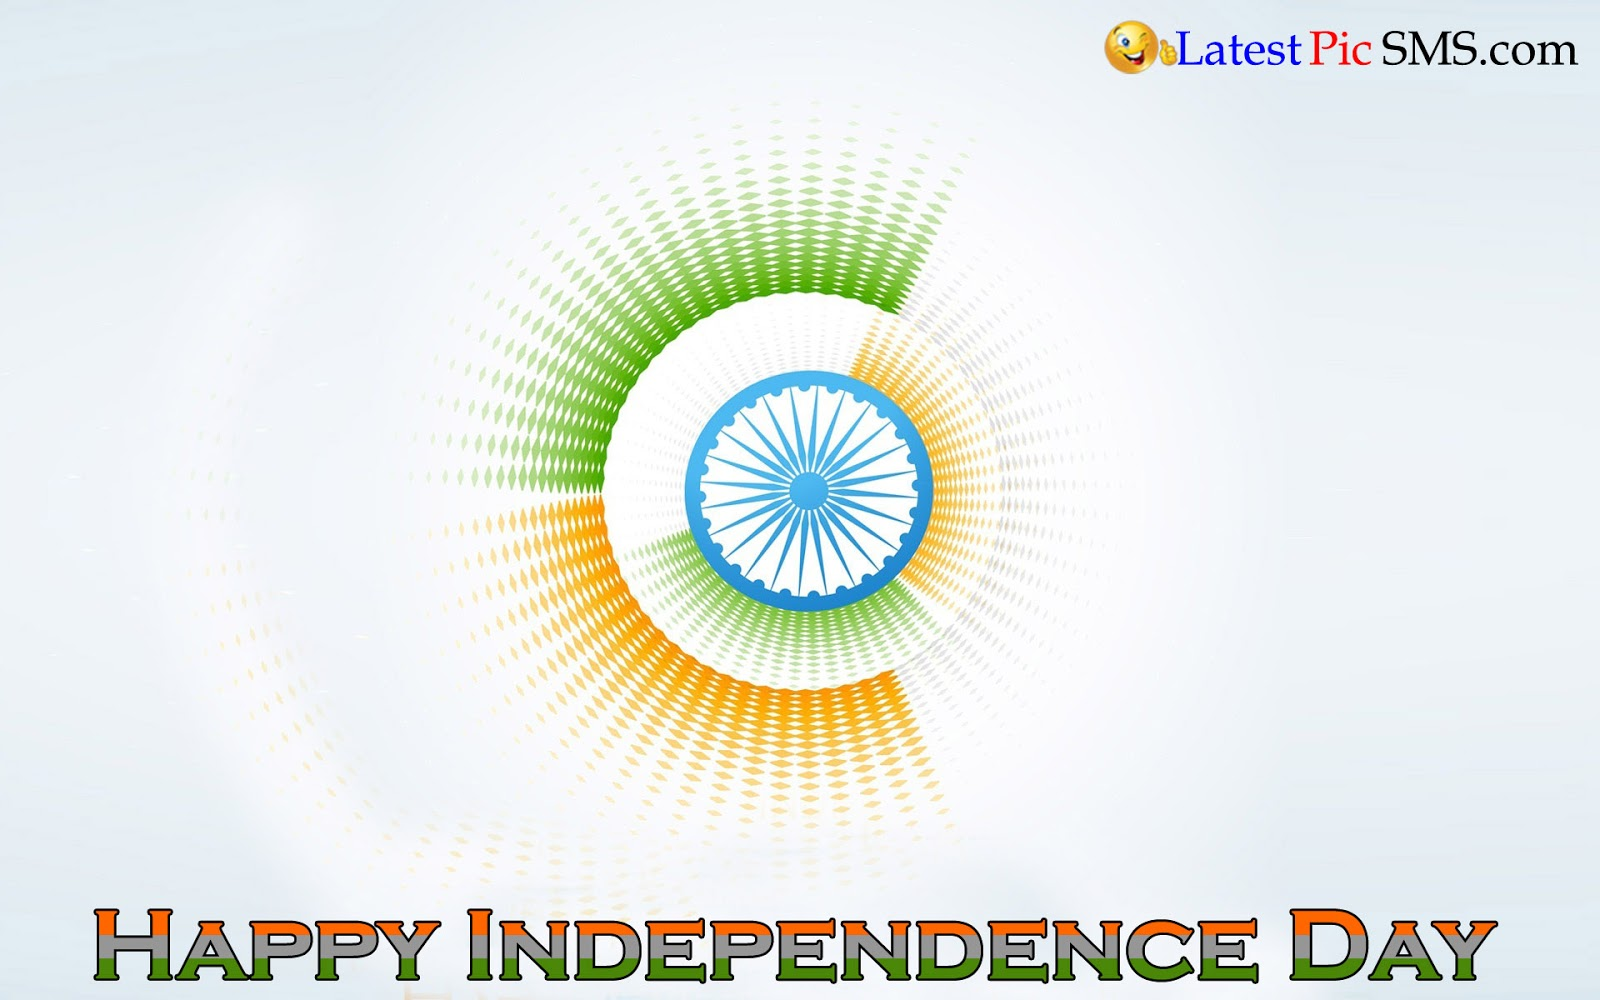 Happy Independence Day India HD Wallpaper instagram - 15 August Indian Independence Day Full HD Images Wallpapers for fb